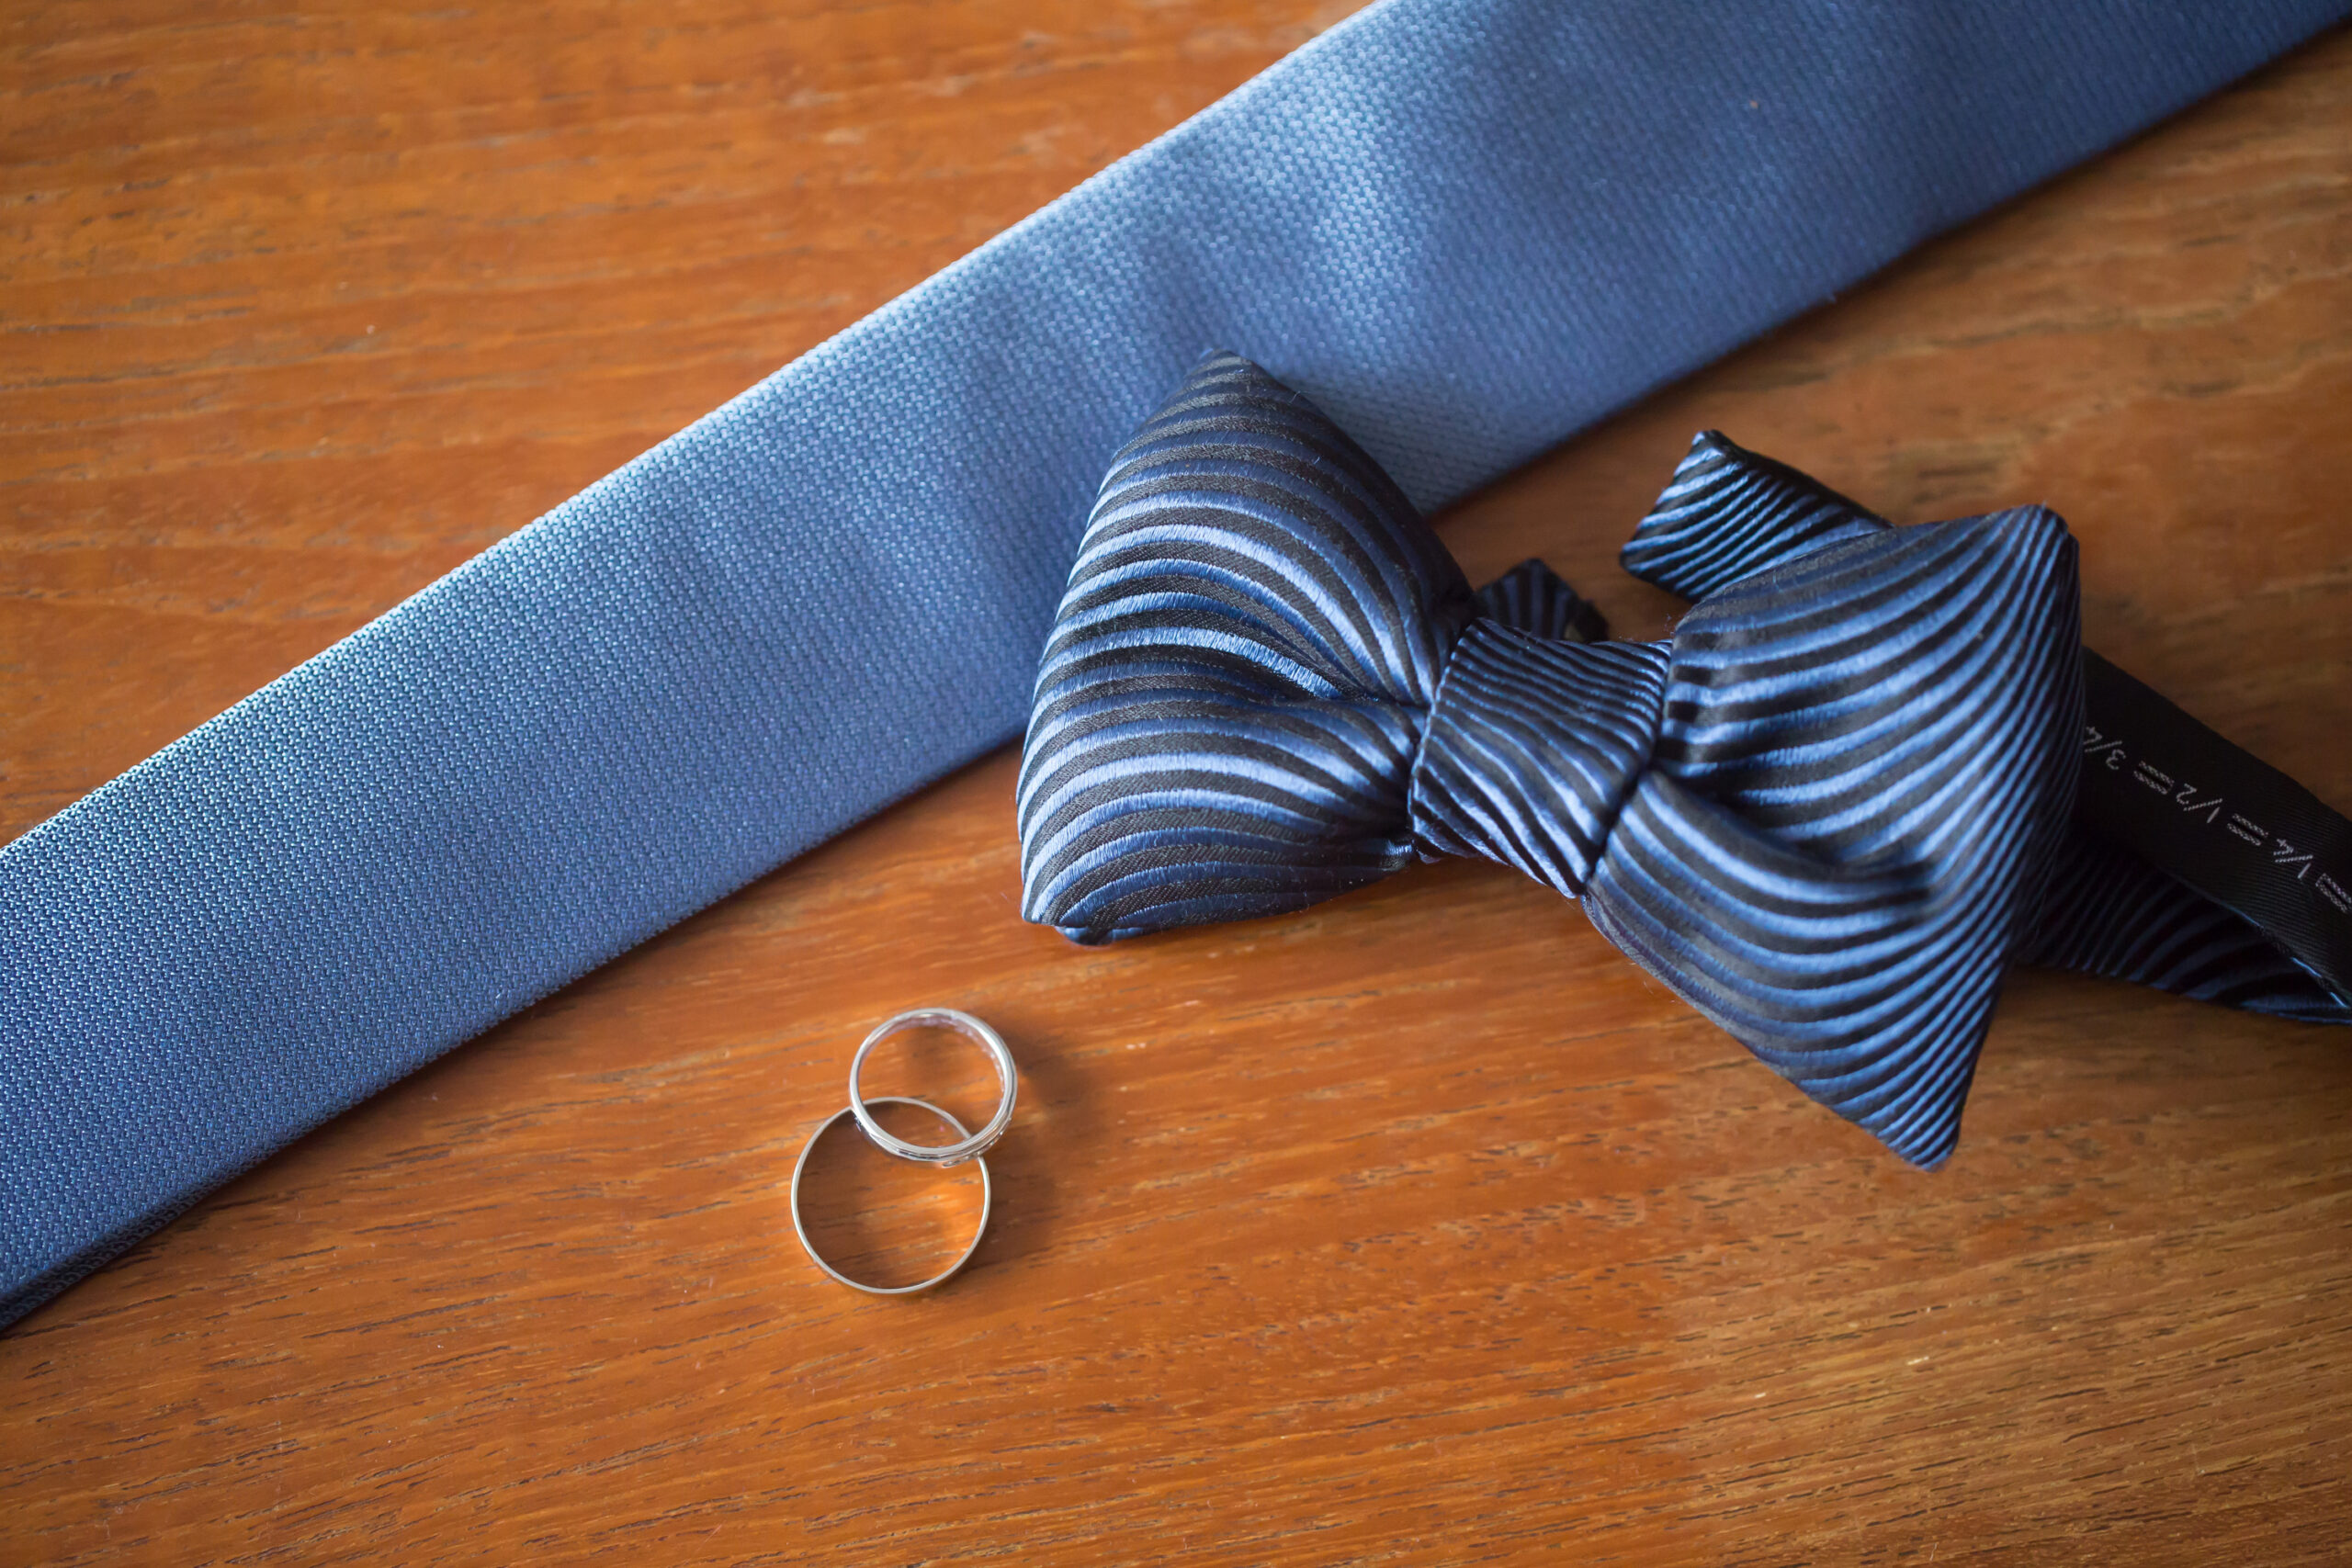 shot of the tie, bow tie and the wedding rings